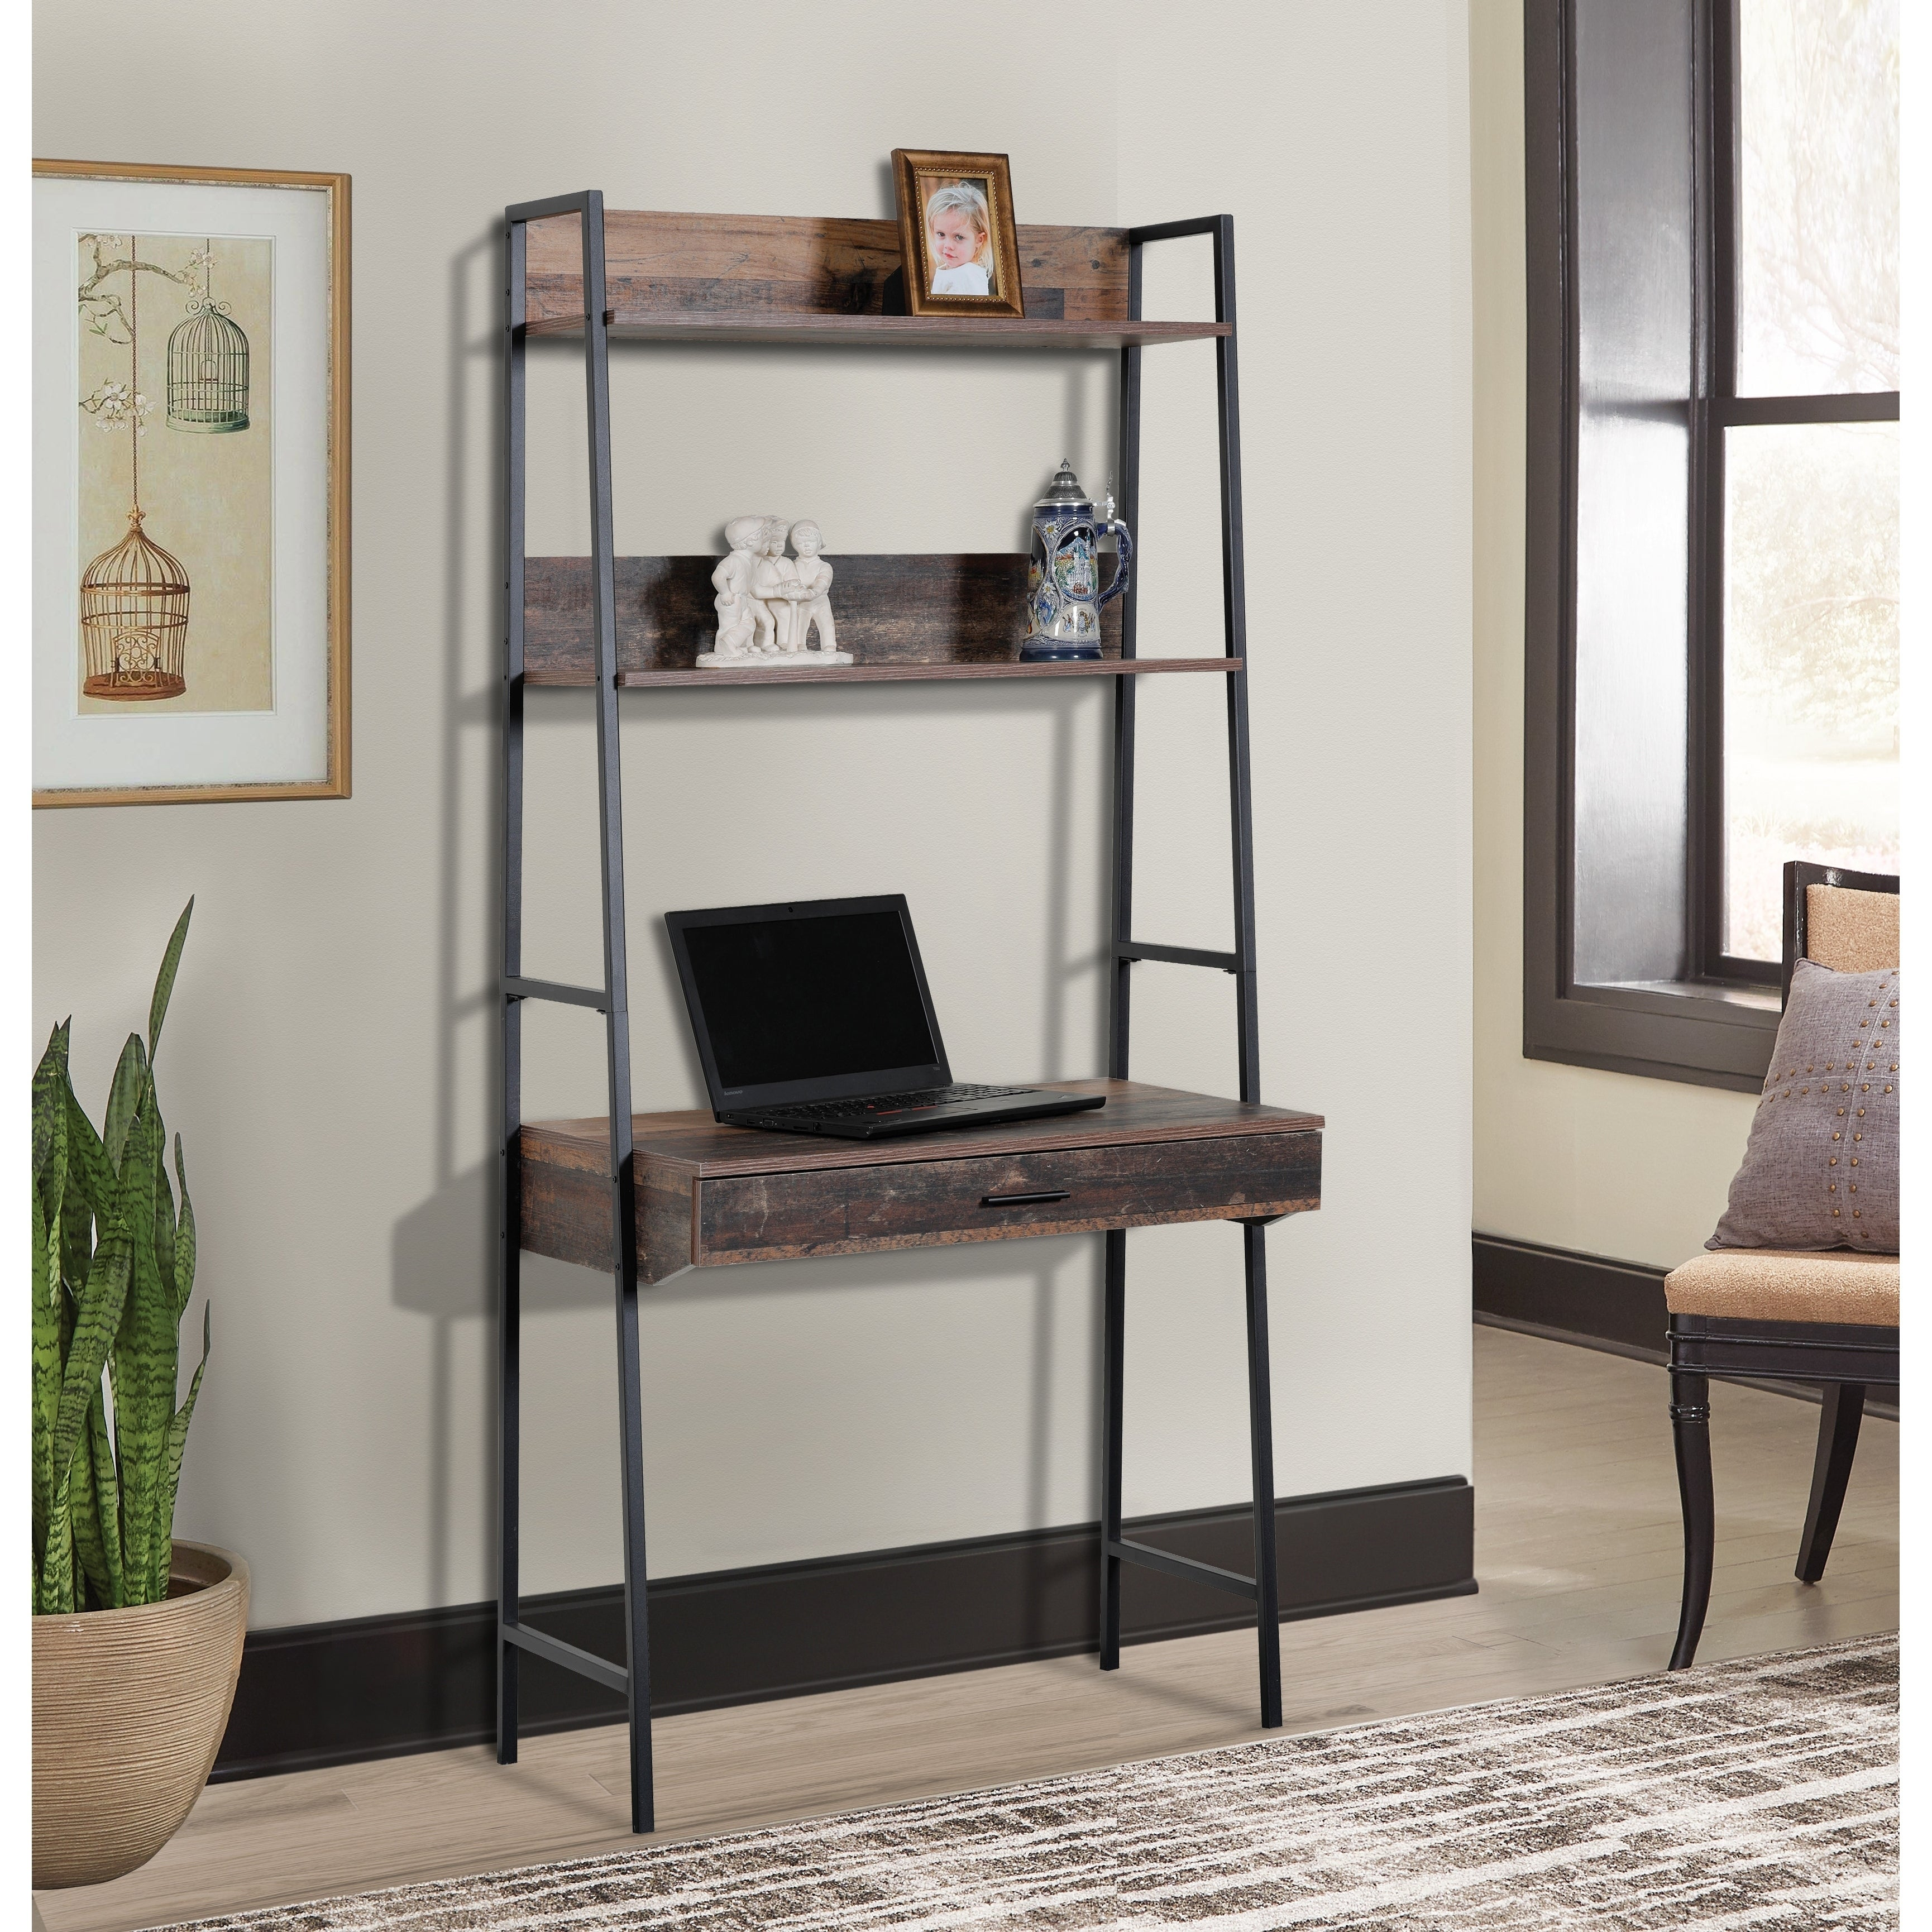 Os Home And Office Furniture Model 41106 Ladder Style Desk With Drawer And Two Shelves With Metal Uprights On Sale Overstock 30812670